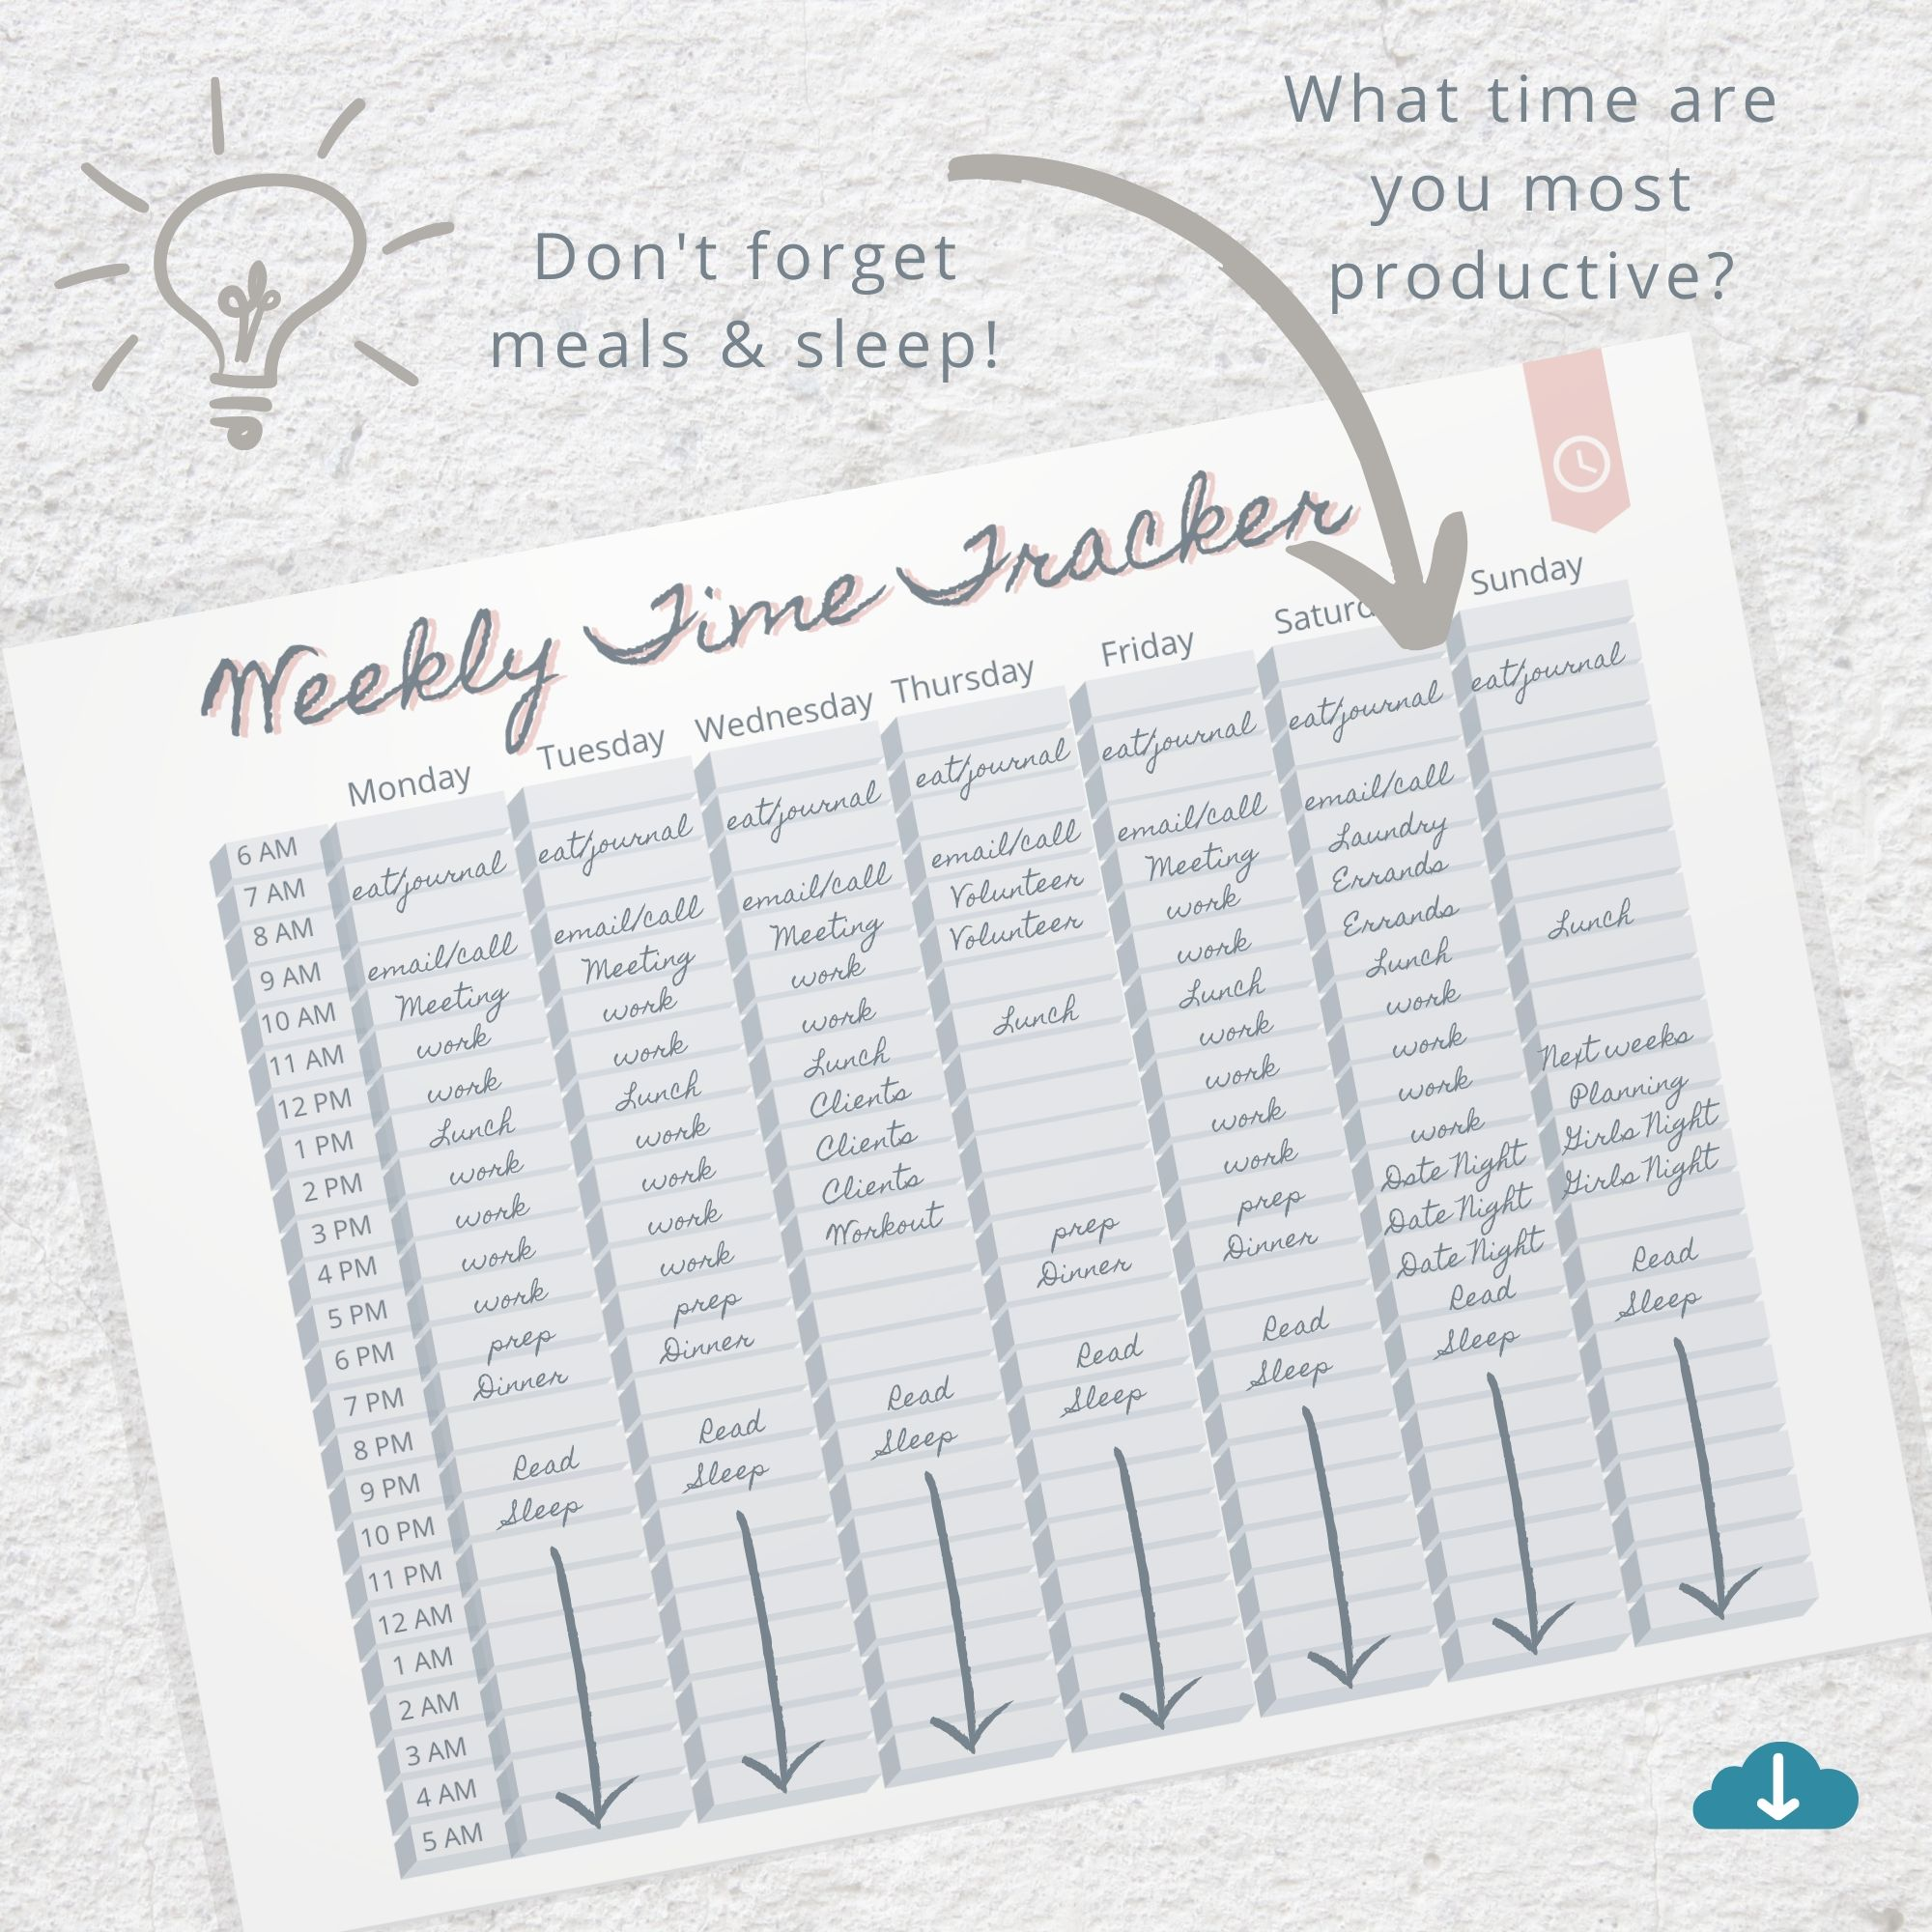 Weekly Time Tracker Printable